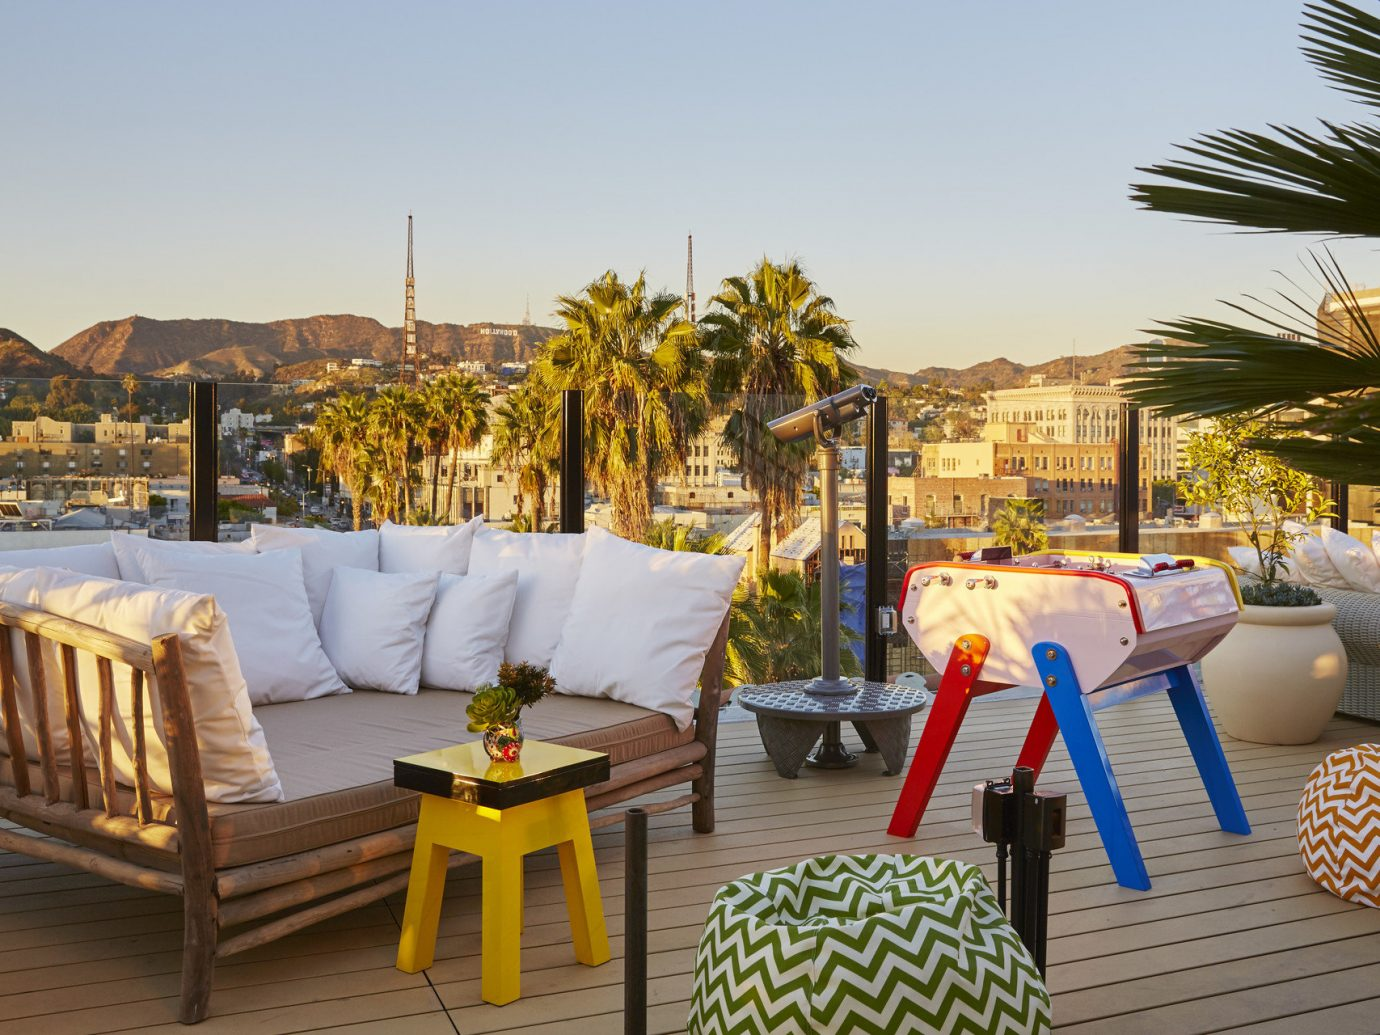 Boutique city views Food + Drink glow golden hour Hip Hotels Lounge lounge chairs Offbeat outdoor lounge palm trees Road Trips Rooftop Sunset trendy Trip Ideas Tropical view sky ground outdoor leisure property Resort vacation estate home Villa backyard overlooking